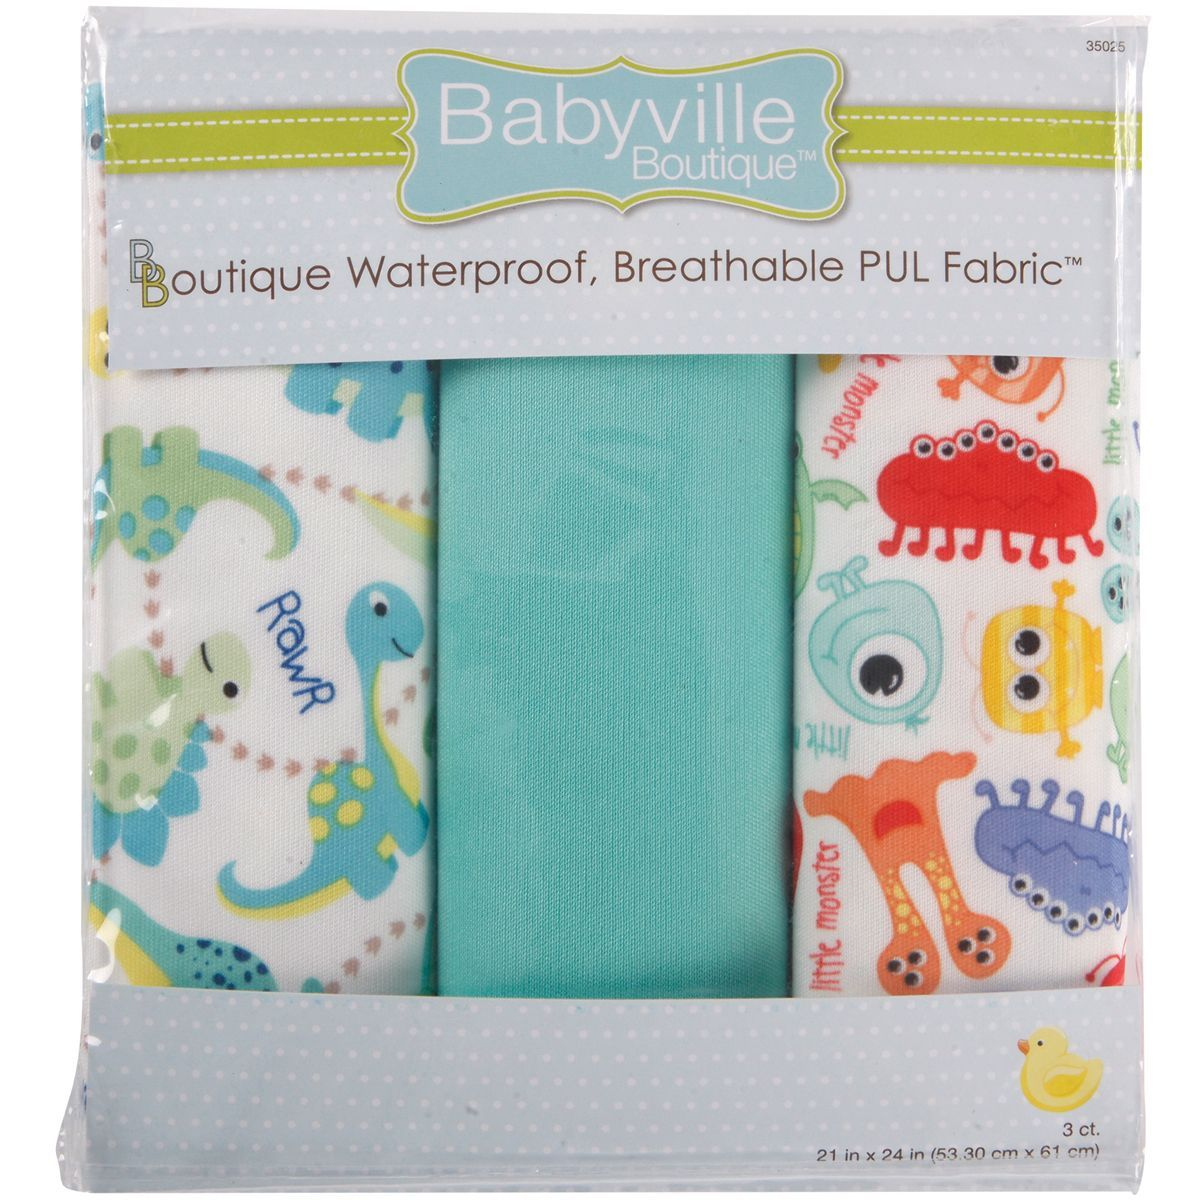 Dritz Babyville PUL Waterproof Diaper Fabric 21inX24in Cuts 3/PkgDinos & Monsters